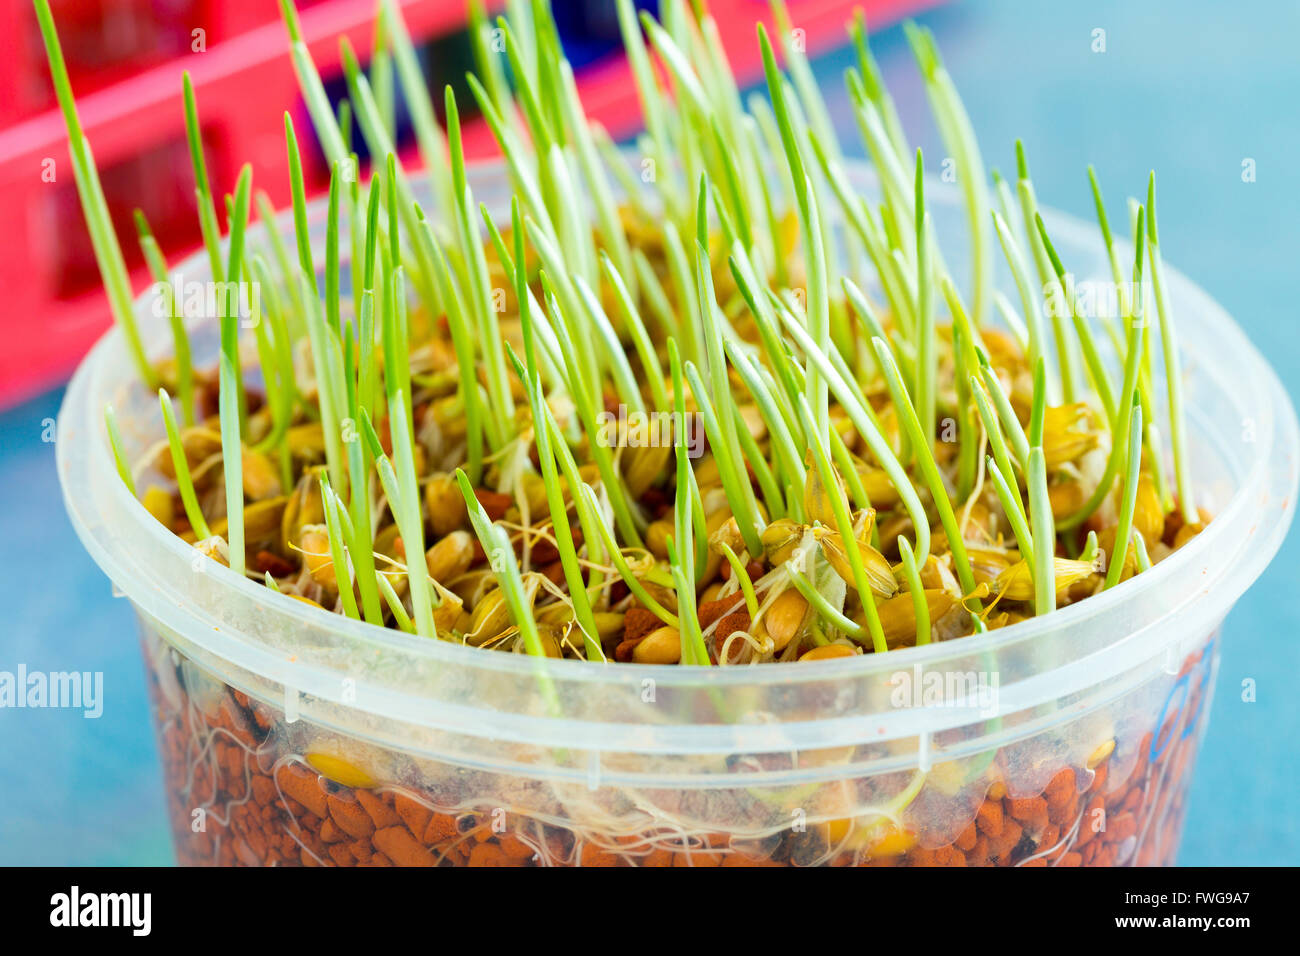 Genetically modified wheat growing in a container. - Stock Image